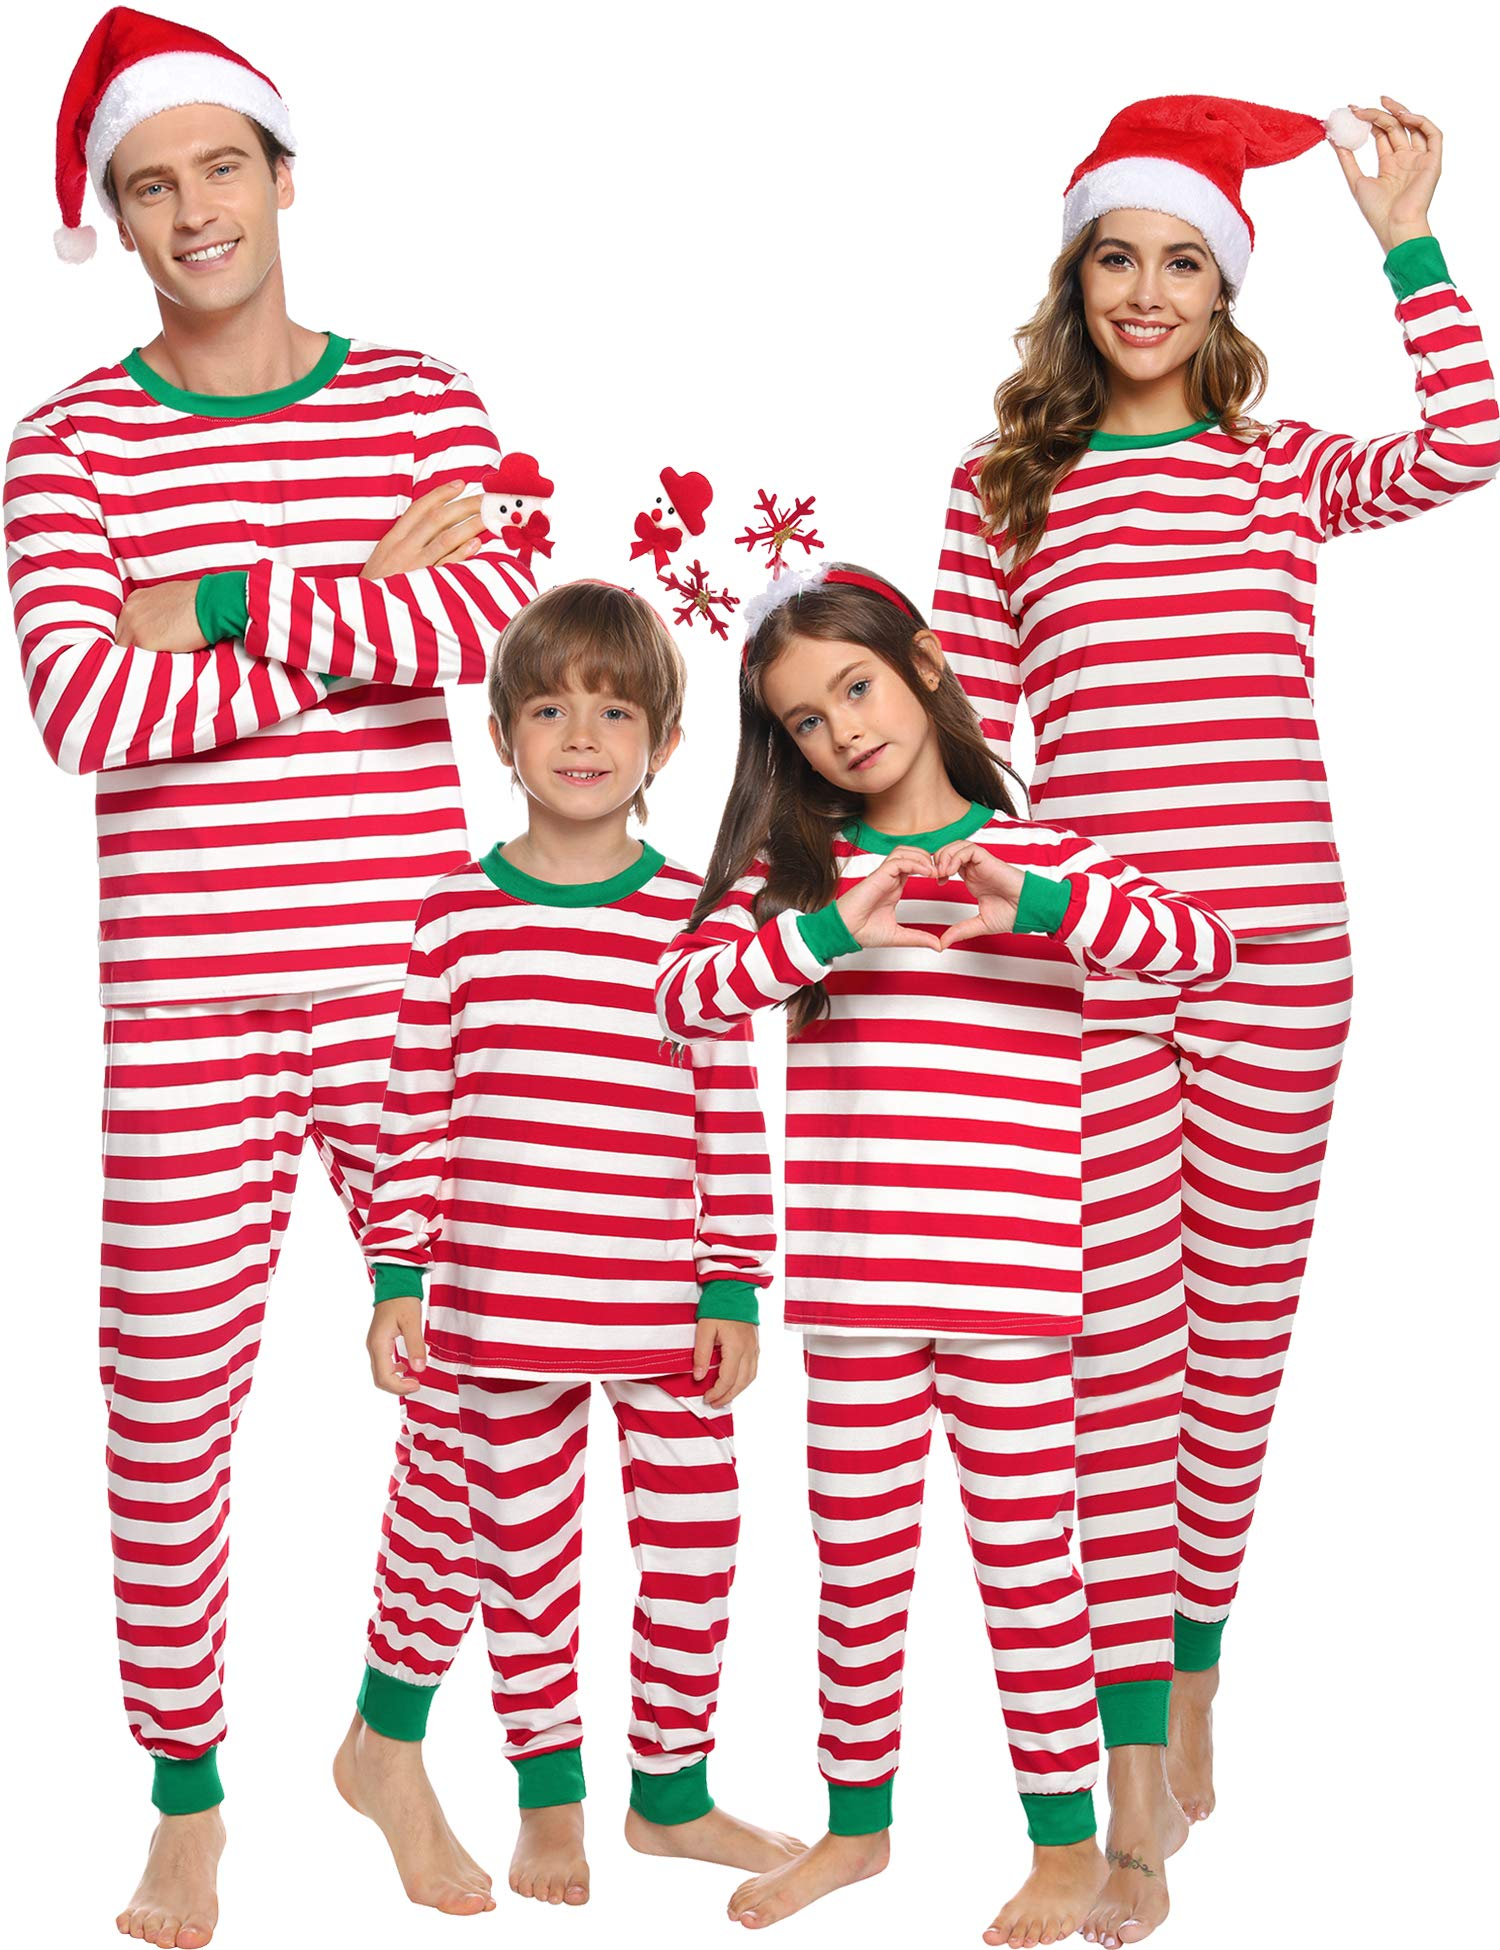 Sykooria Matching Family Christmas Pajamas Set Womens Mens Boys Girls Kids Snowman Reindeer Top & Plaid Pants